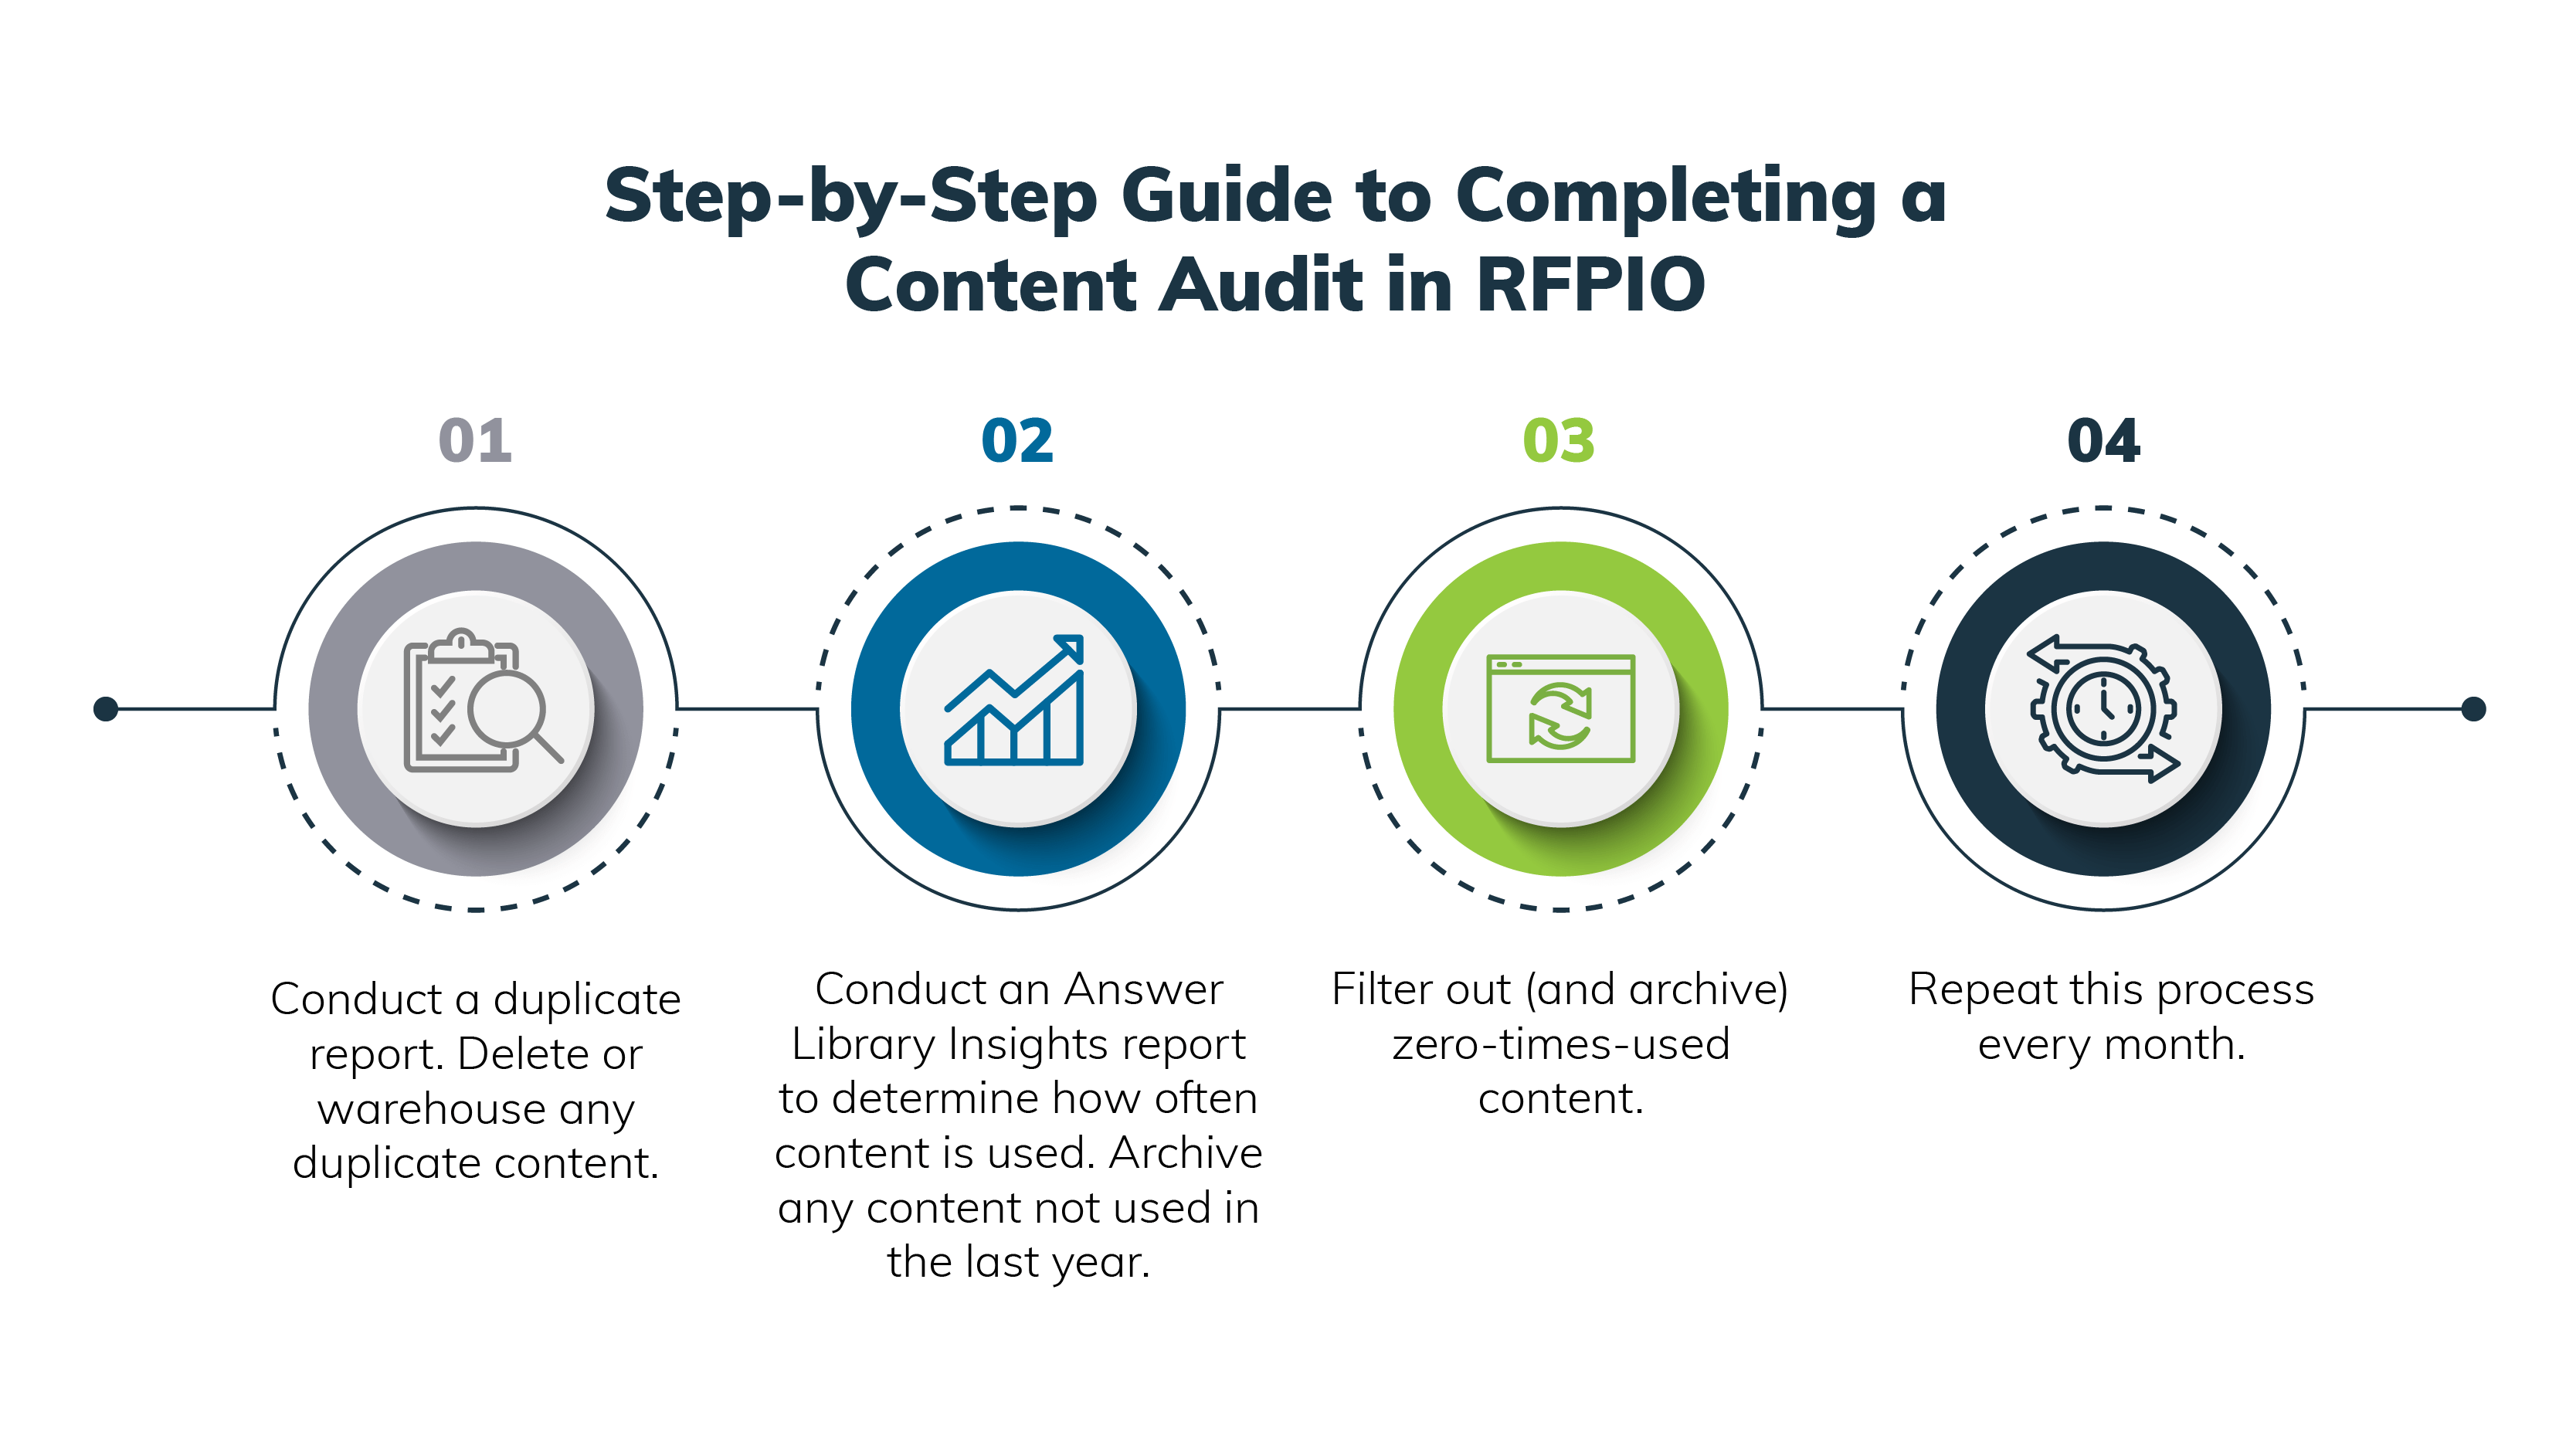 A step-by-step guide to completing a content audit in RFPIO